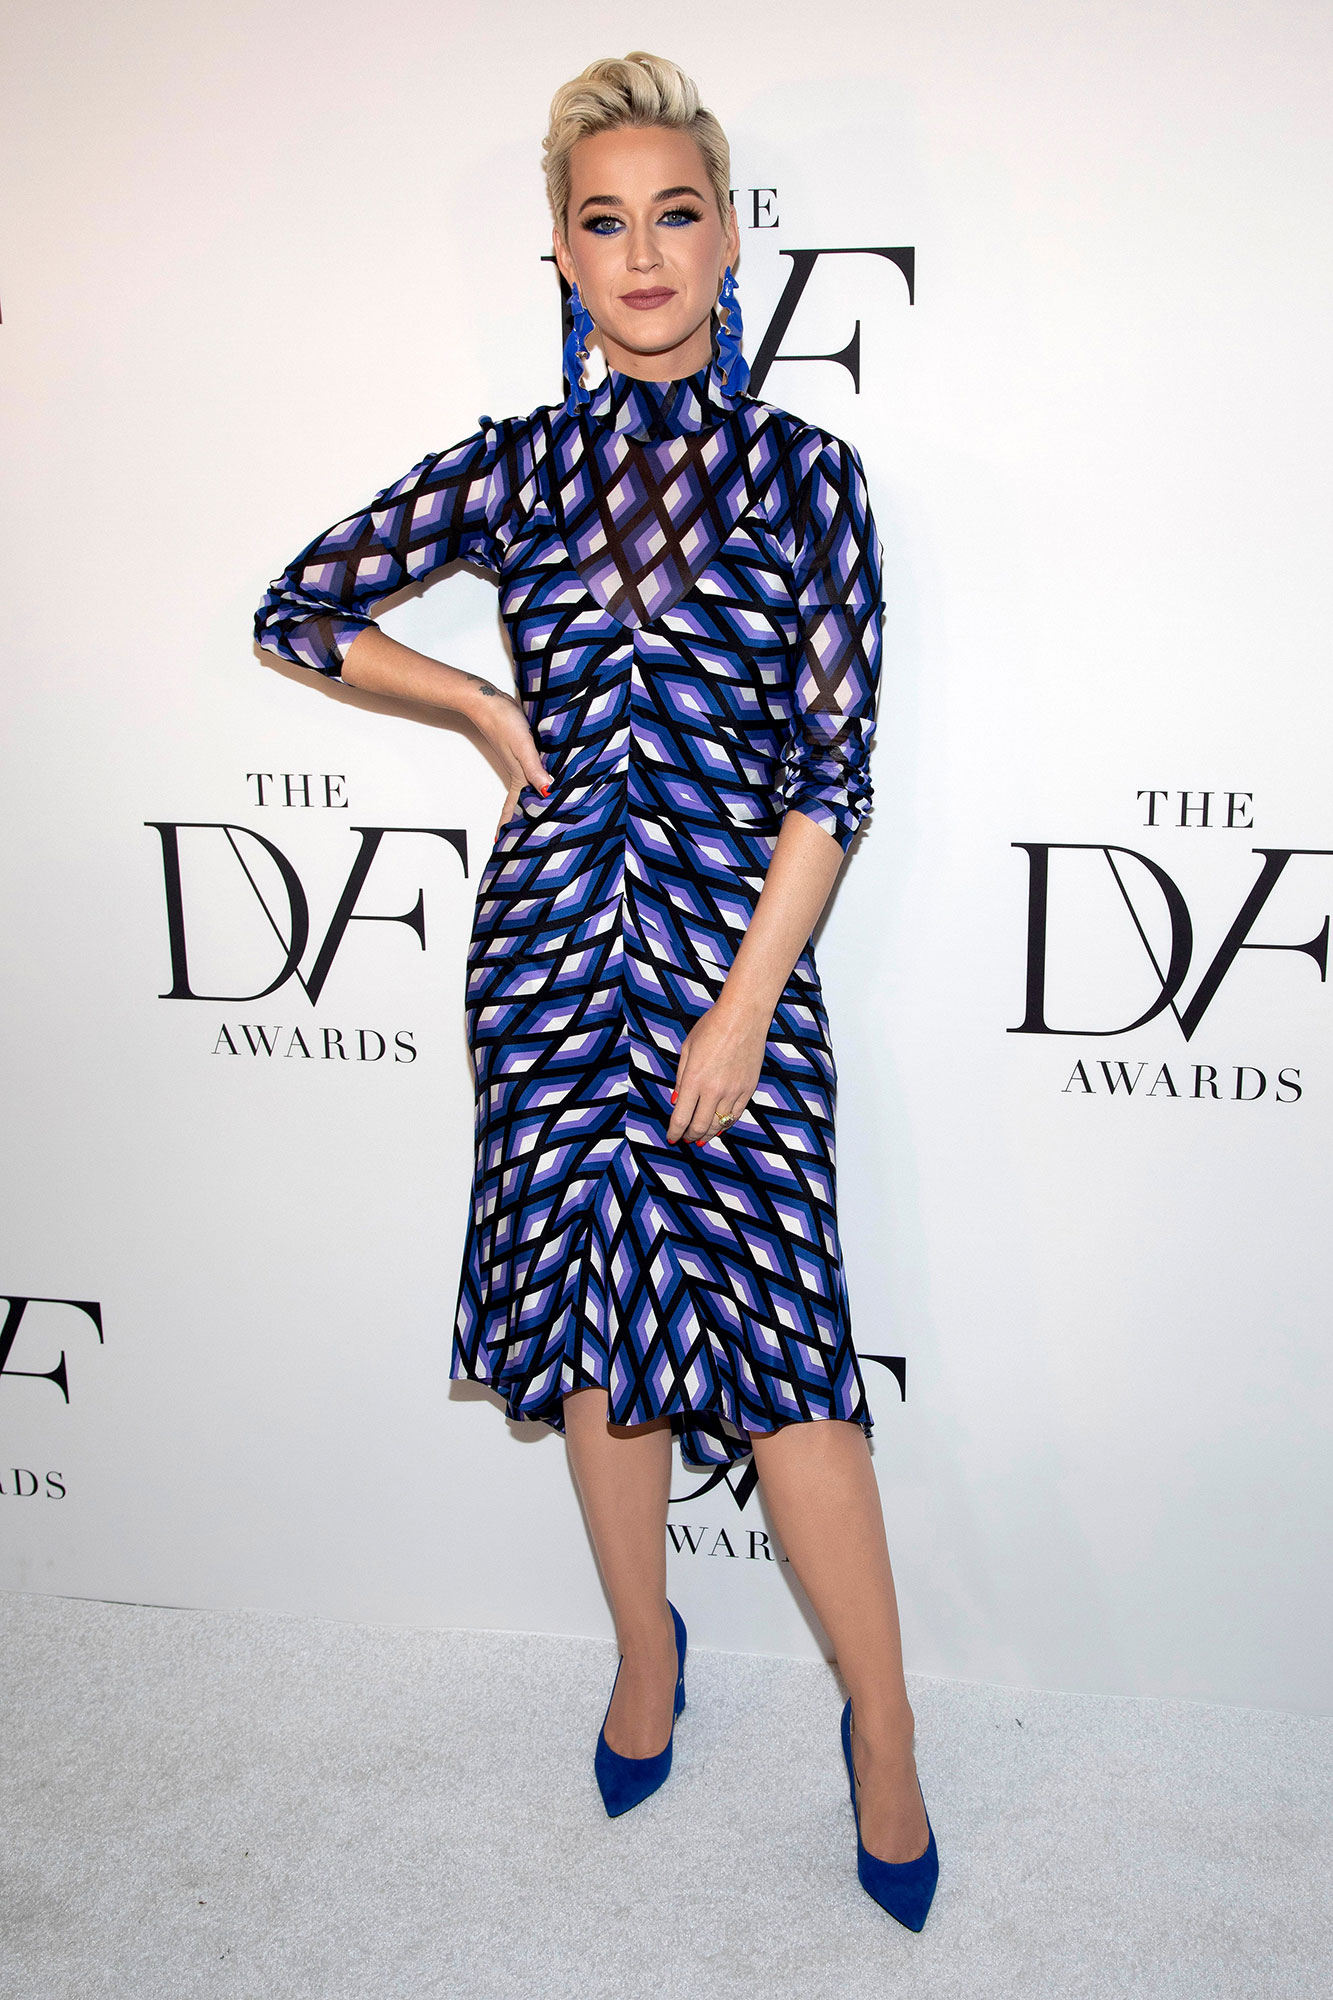 Katy Perry Ordered to Pay Copied Christian Song - Katy Perry attends the 10th annual DVF Awards at the Brooklyn Museum on April 11, 2019 in the Brooklyn borough of New York City.